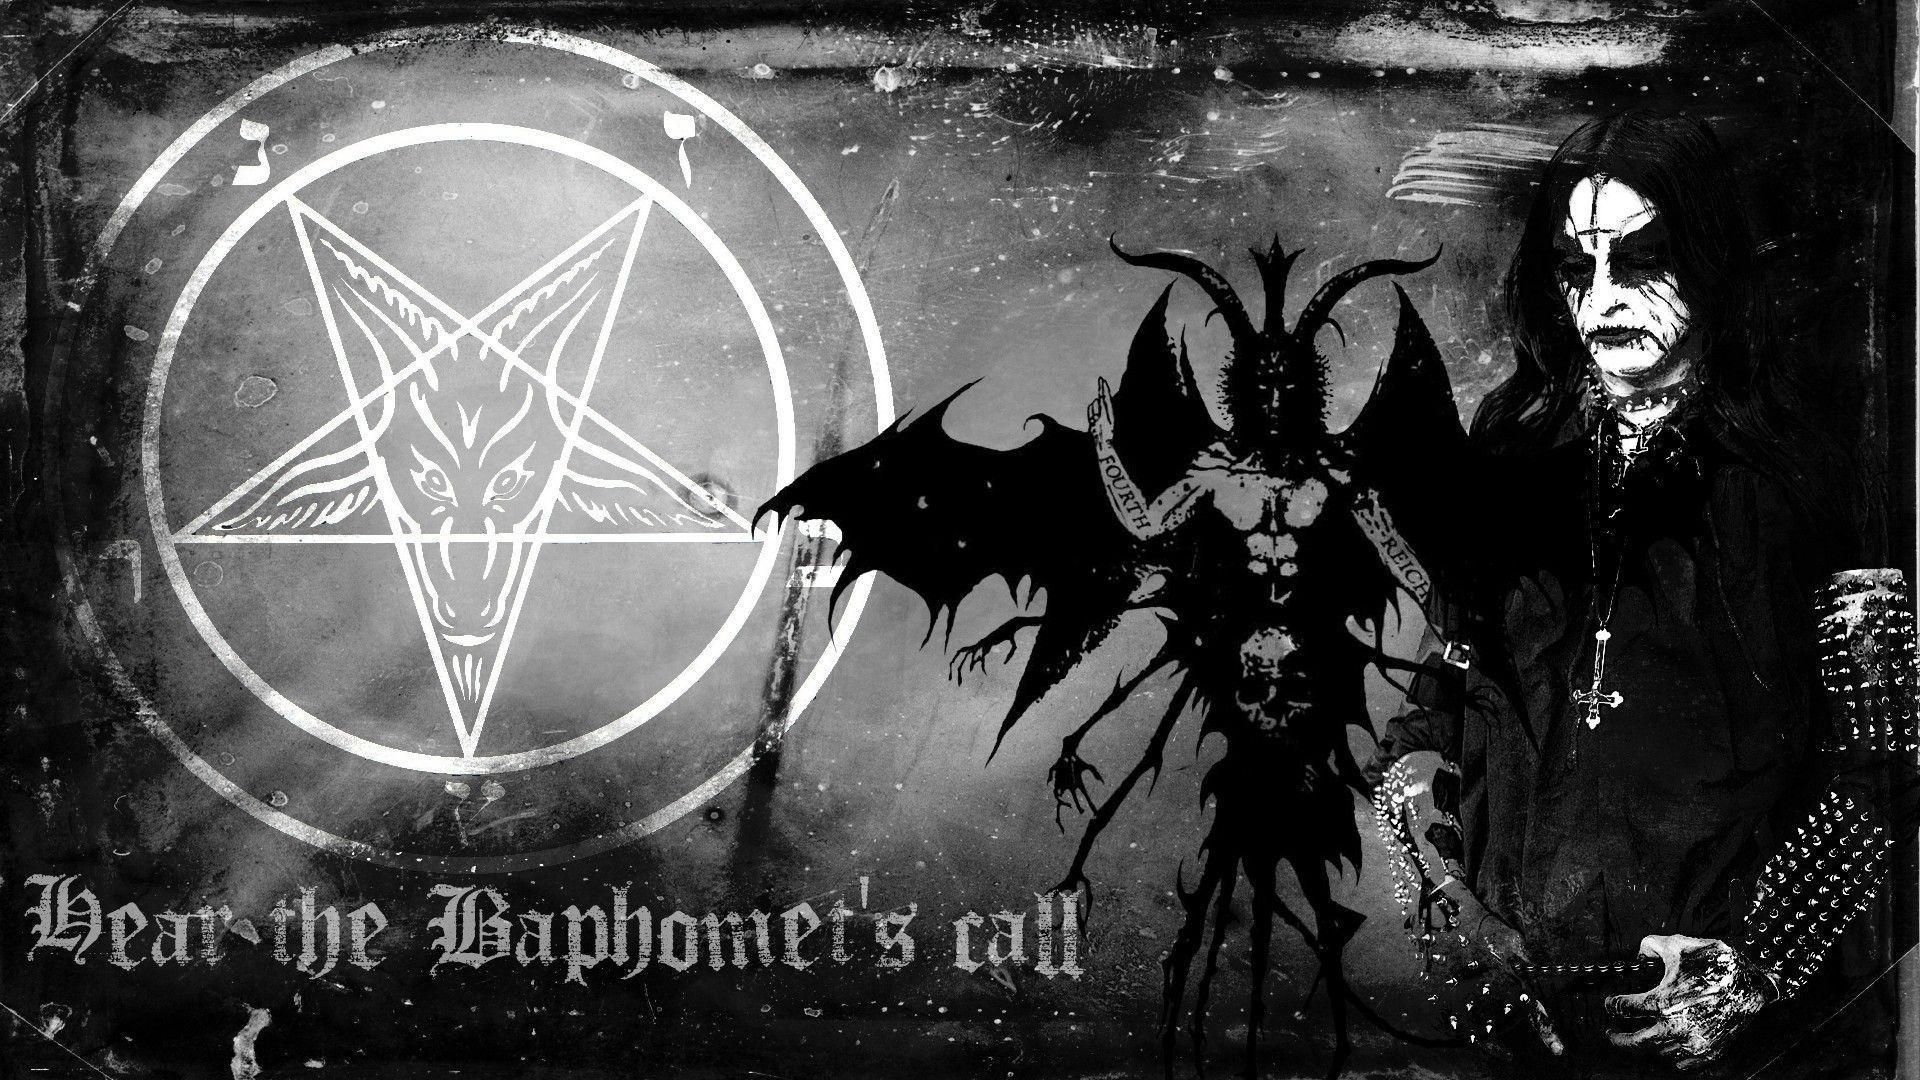 Pin By Eden Black On Black Metal True Kvlt Our Music Bands Hessian Culture Traditions Preferences Black Metal Metallic Wallpaper Wallpaper Keren